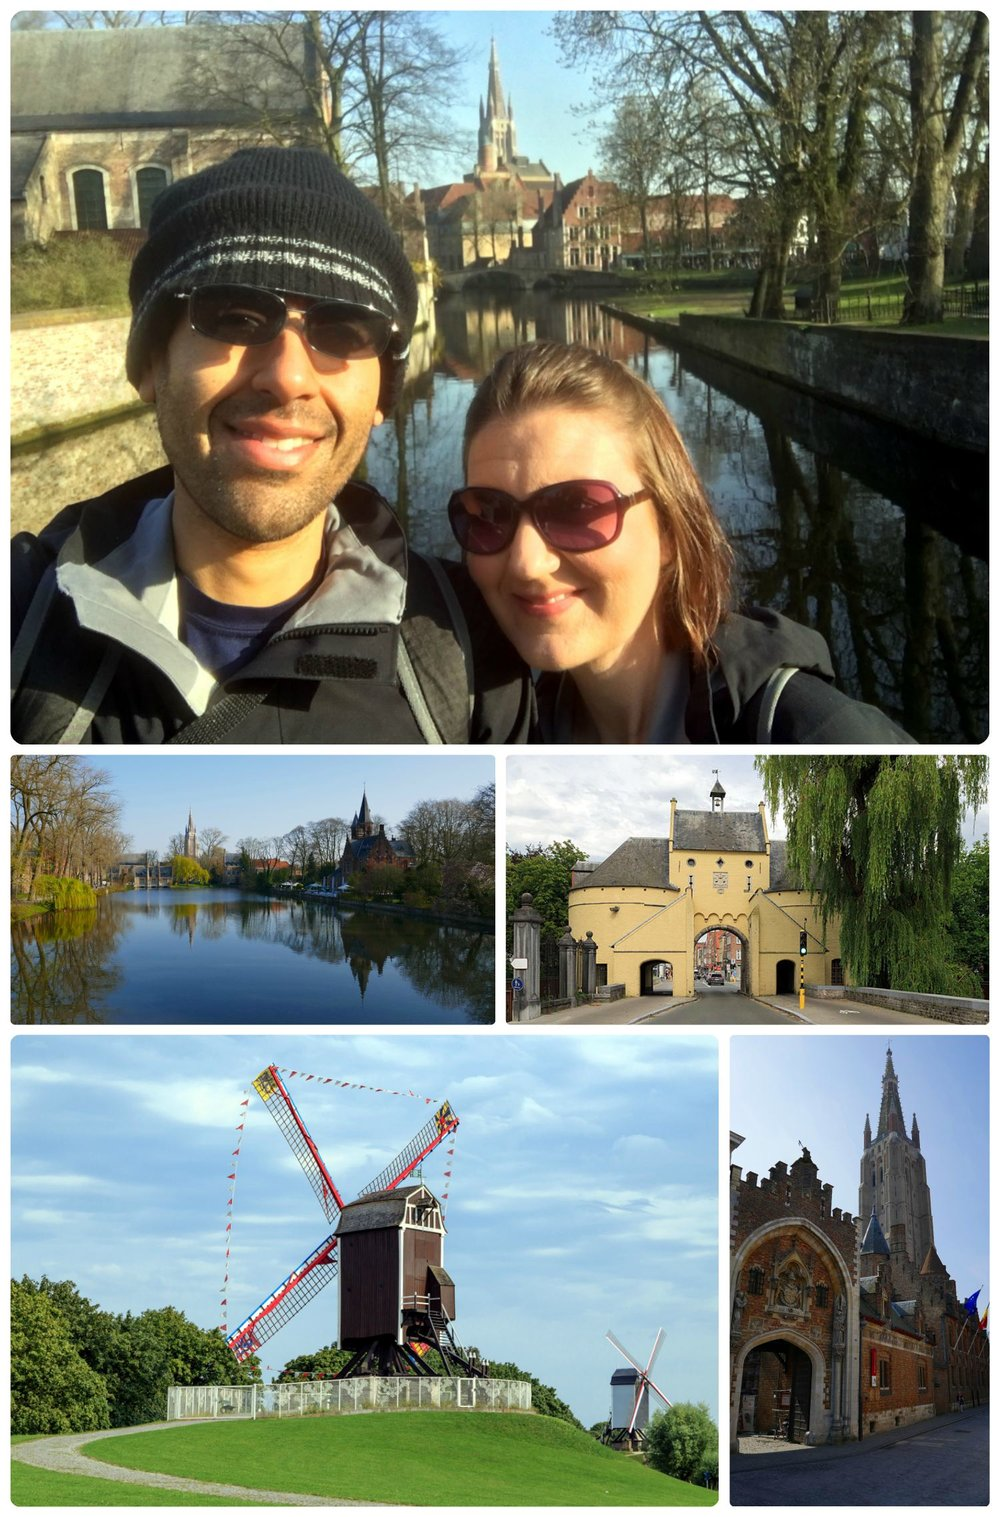 Top to  bottom: Us on the bridge over the 'Lake of Love' at Minnewaterpark, Smedenpoort Gate, Windmills, view of Church of Our Lady from Nieuwstraat street.